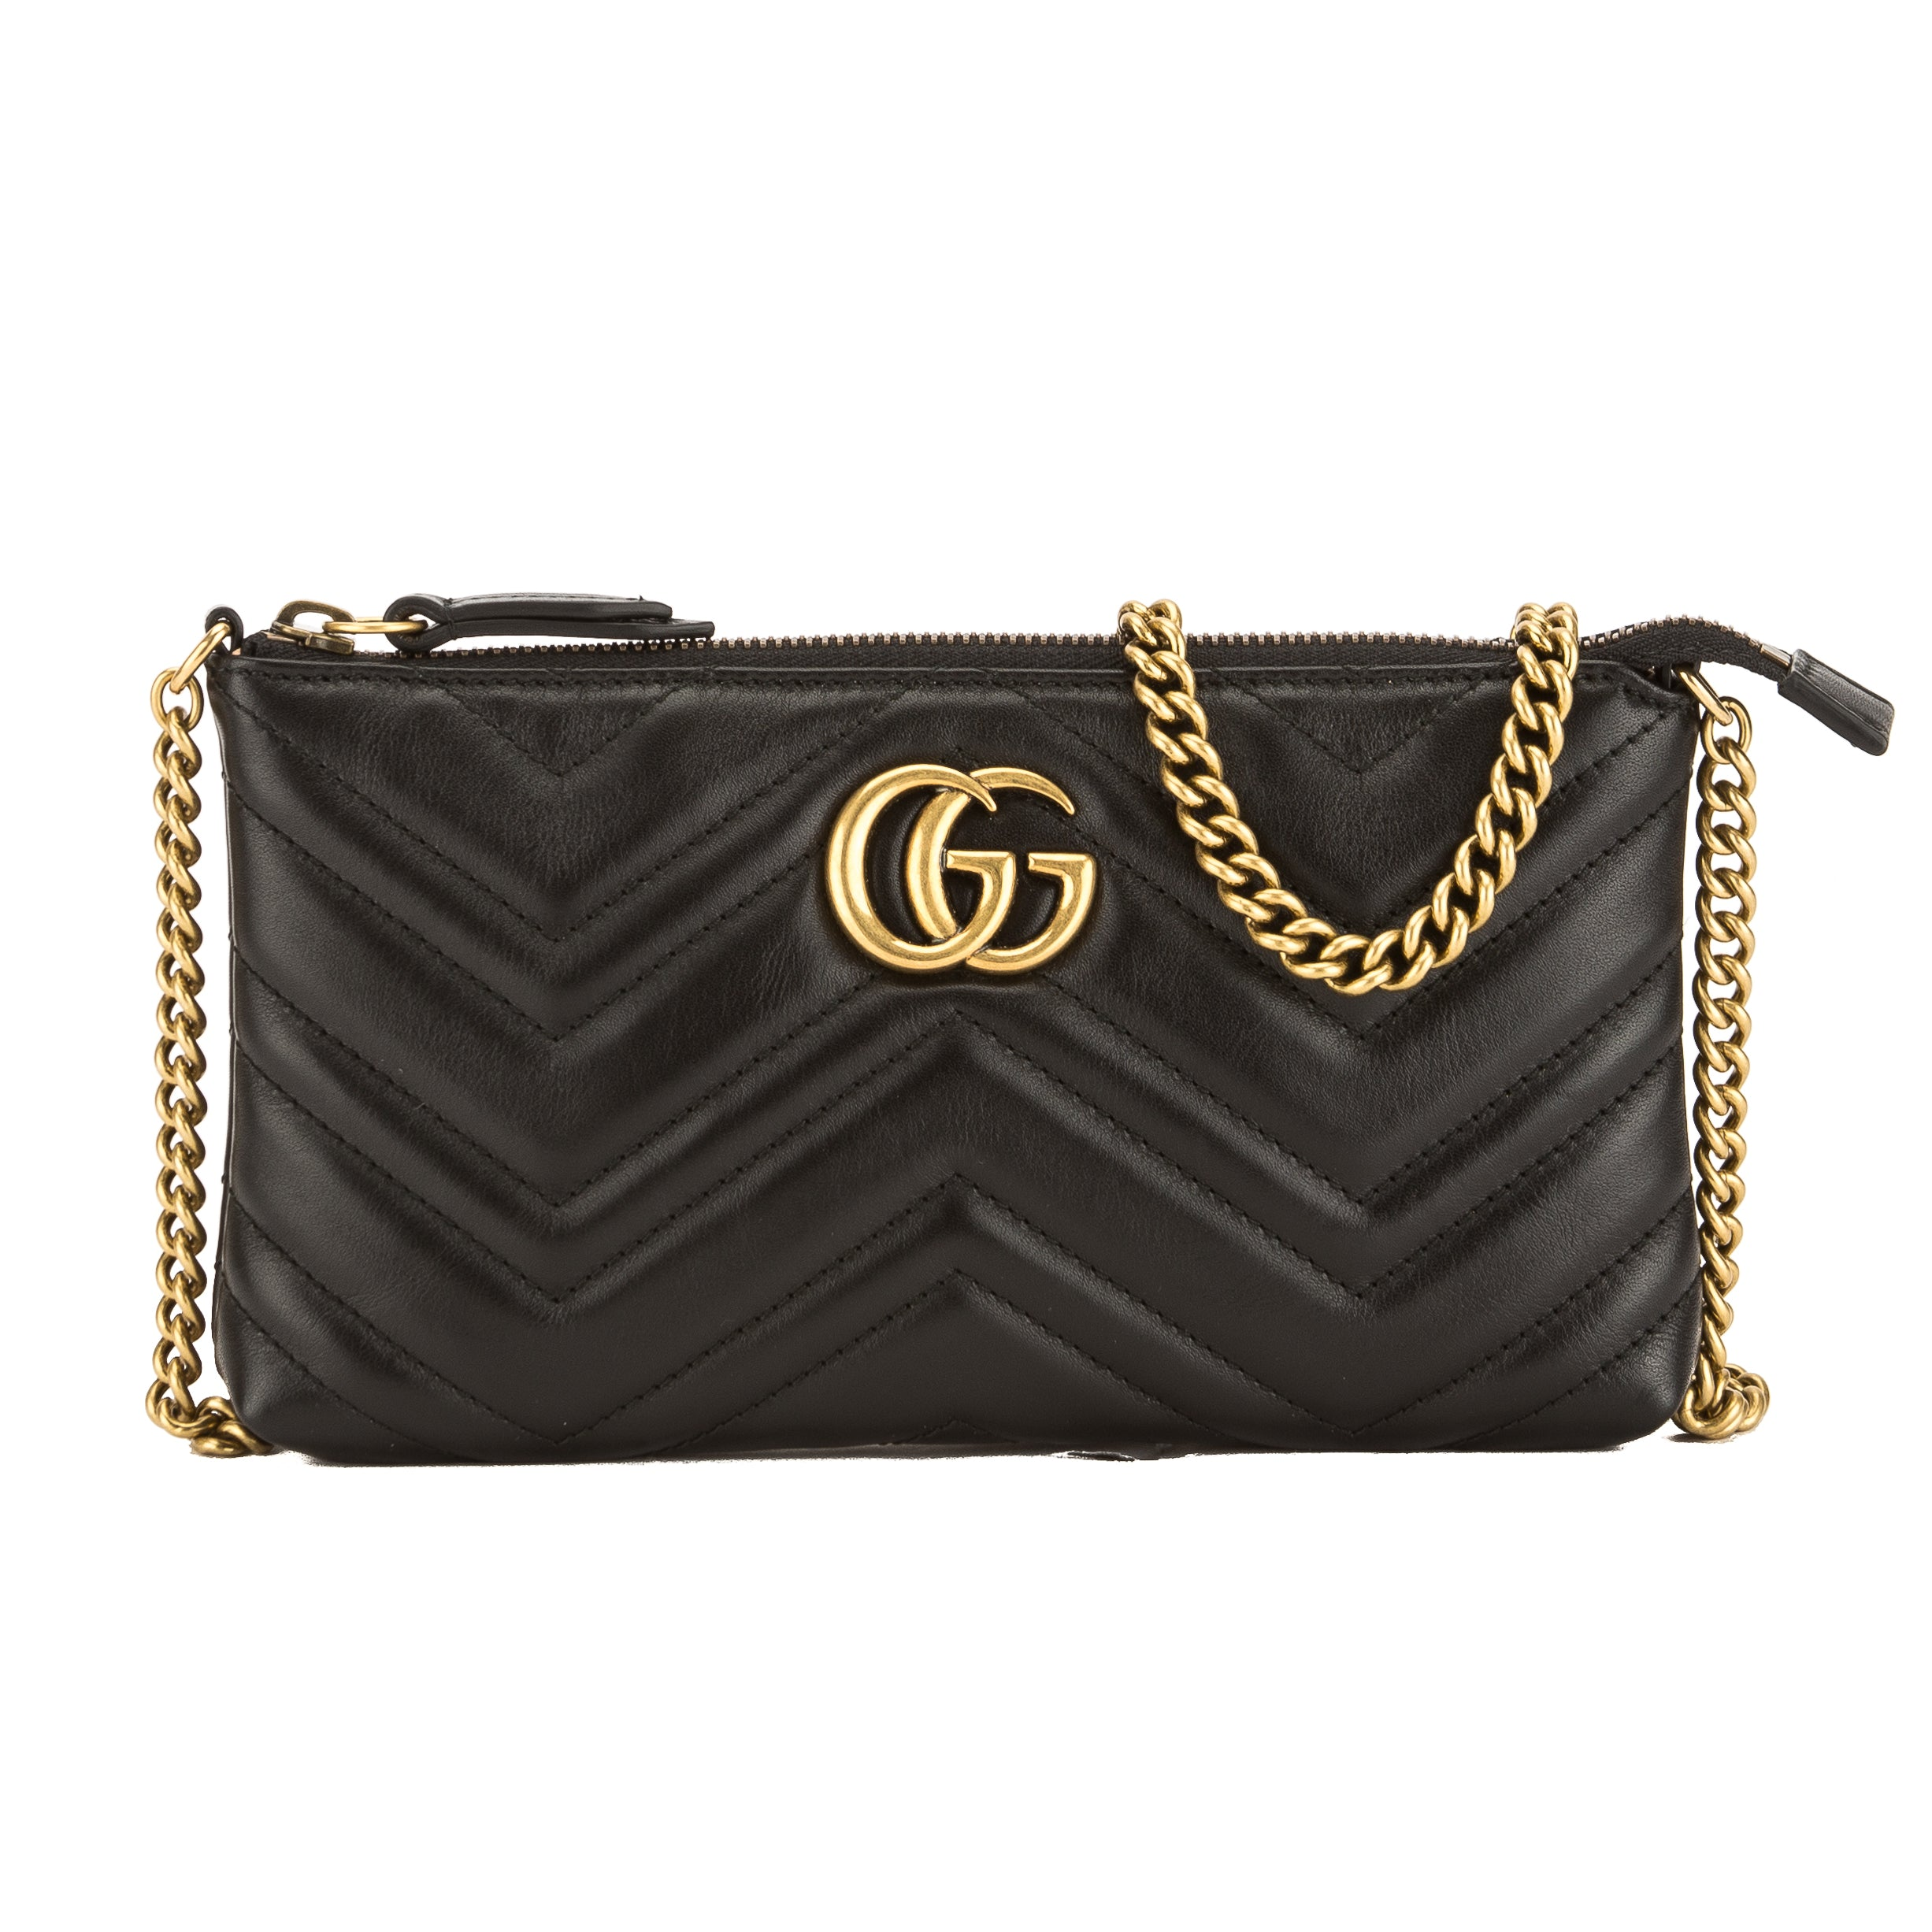 6208aded97b0 Gucci Black Leather GG Marmont Mini Chain Bag (New with Tags ...